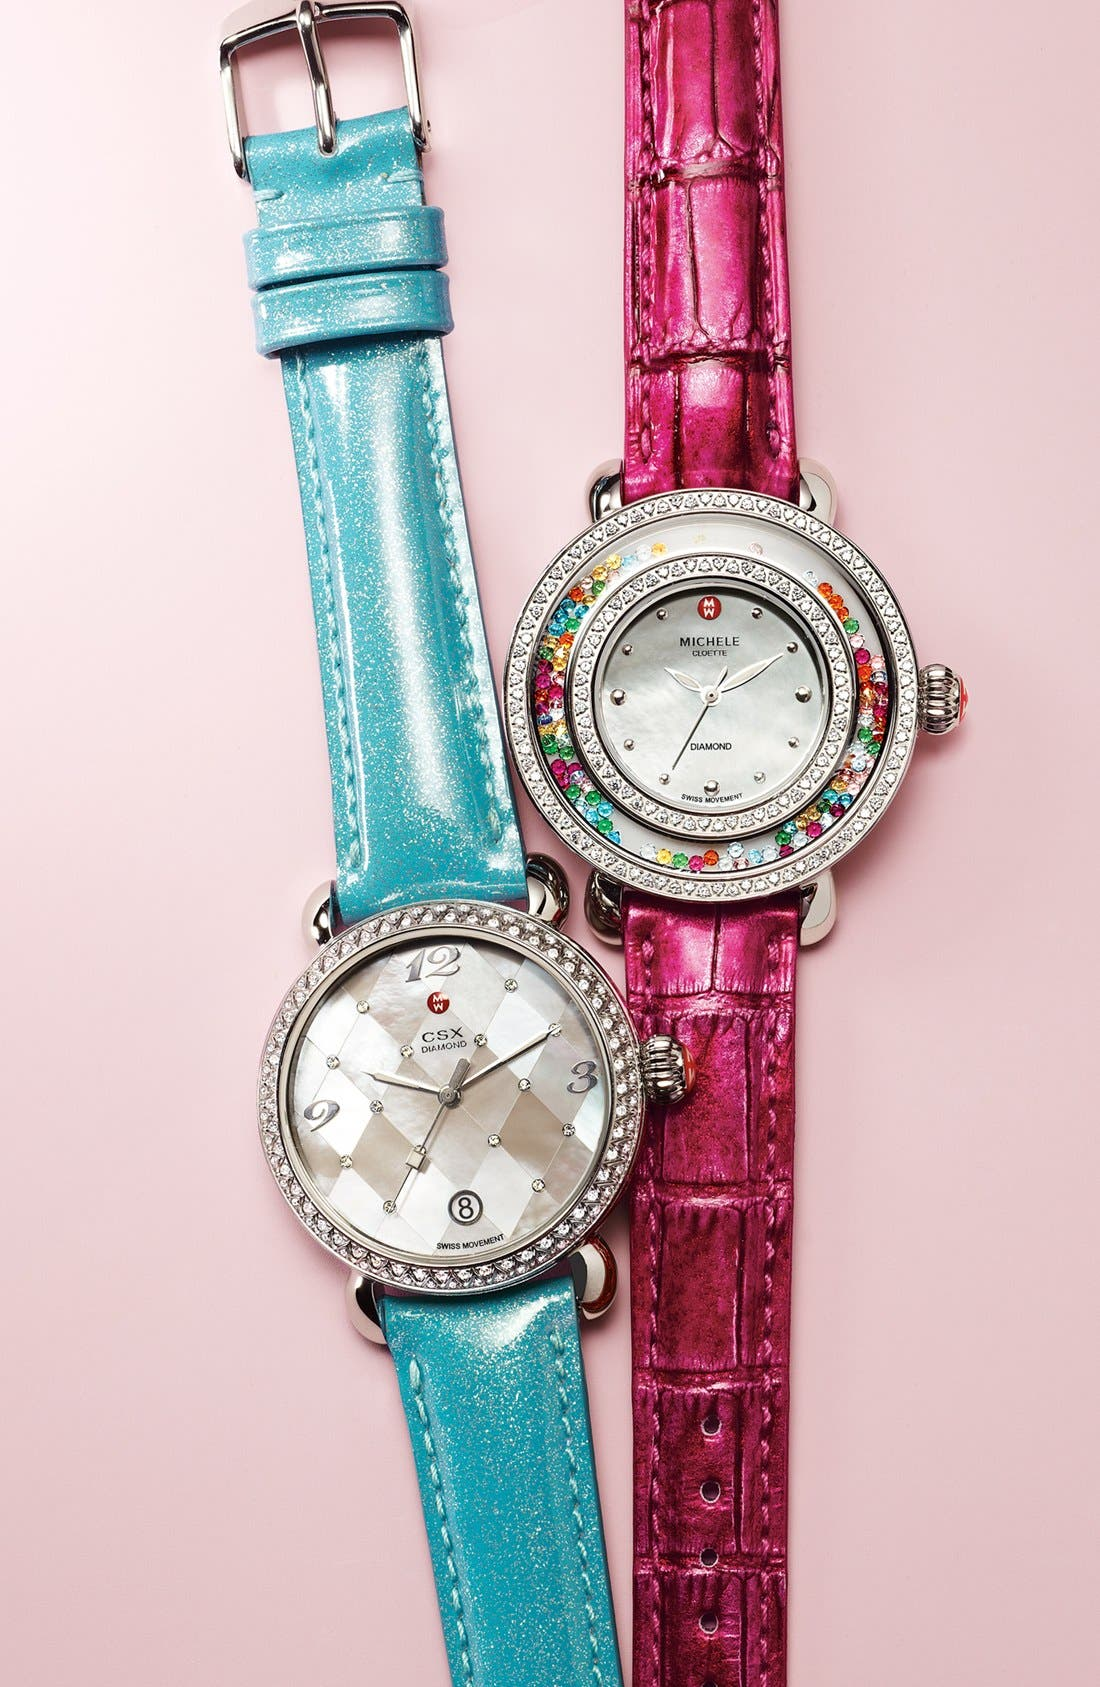 Alternate Image 1 Selected - MICHELE 'Cloette Carnival' Customizable Watch